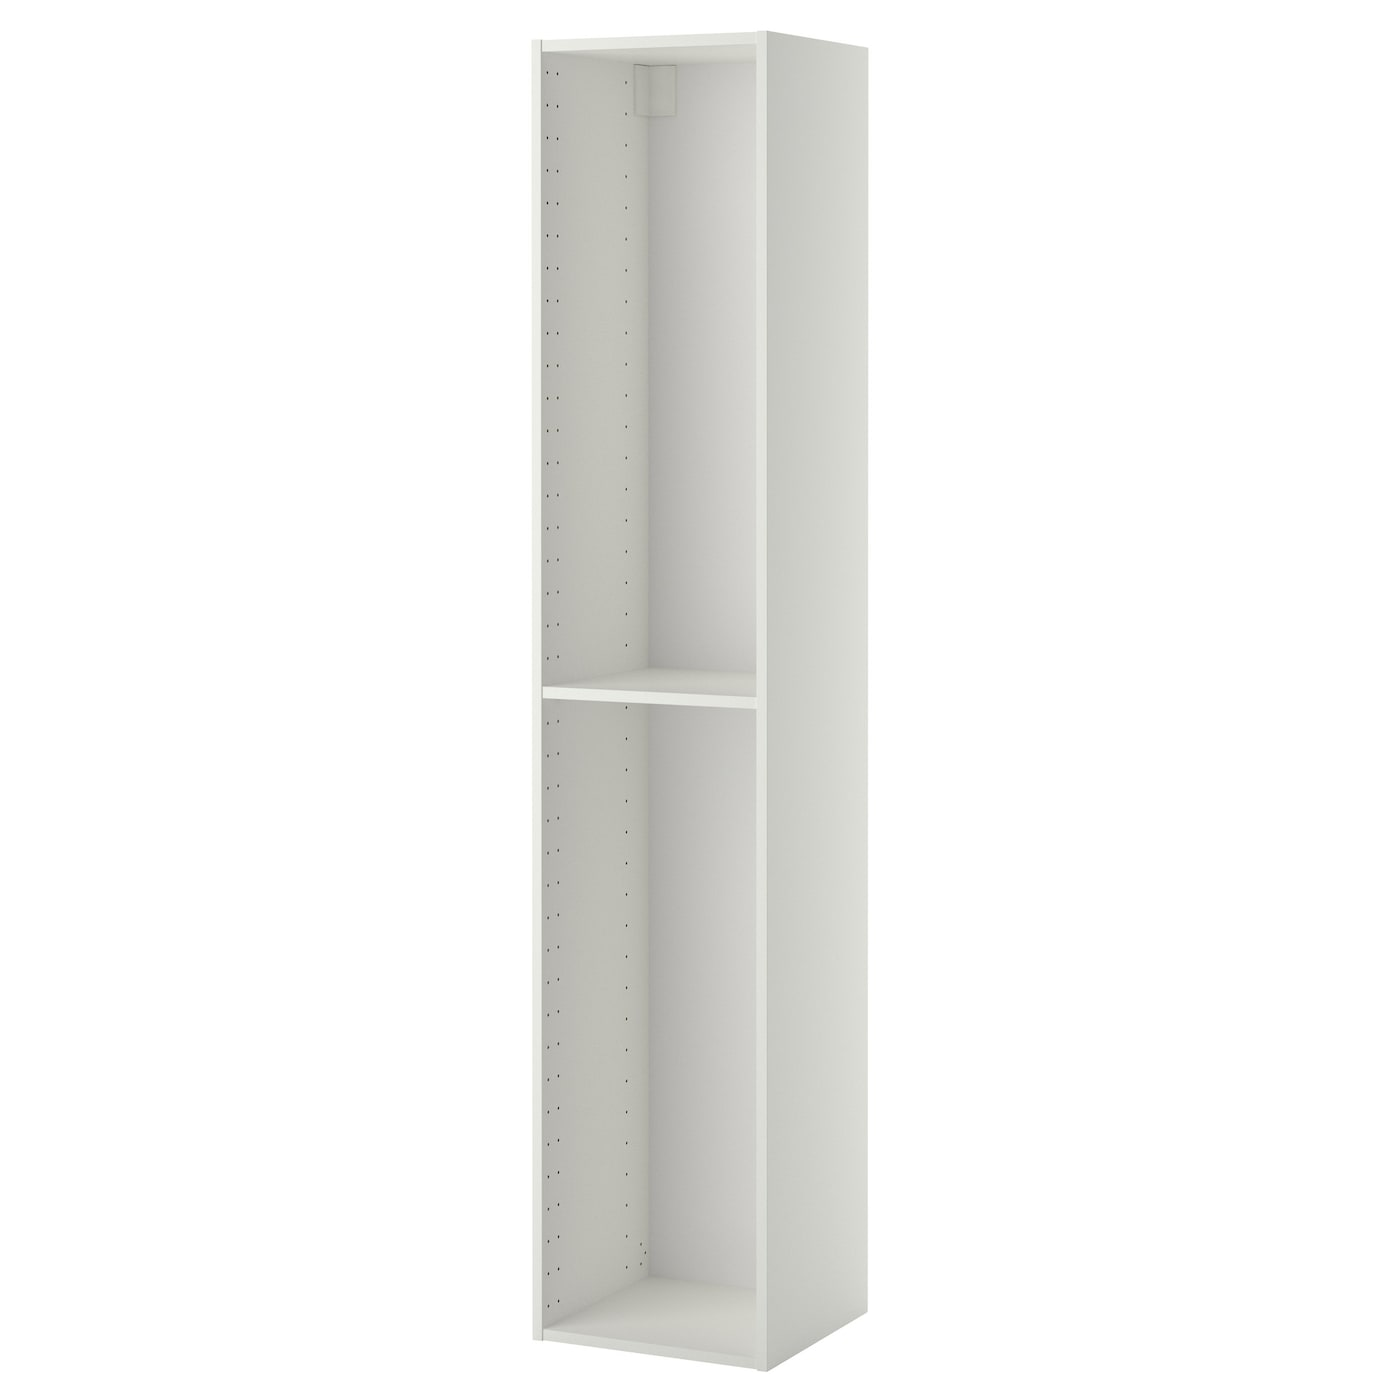 metod high cabinet frame white 40 x 37 x 200 cm ikea. Black Bedroom Furniture Sets. Home Design Ideas